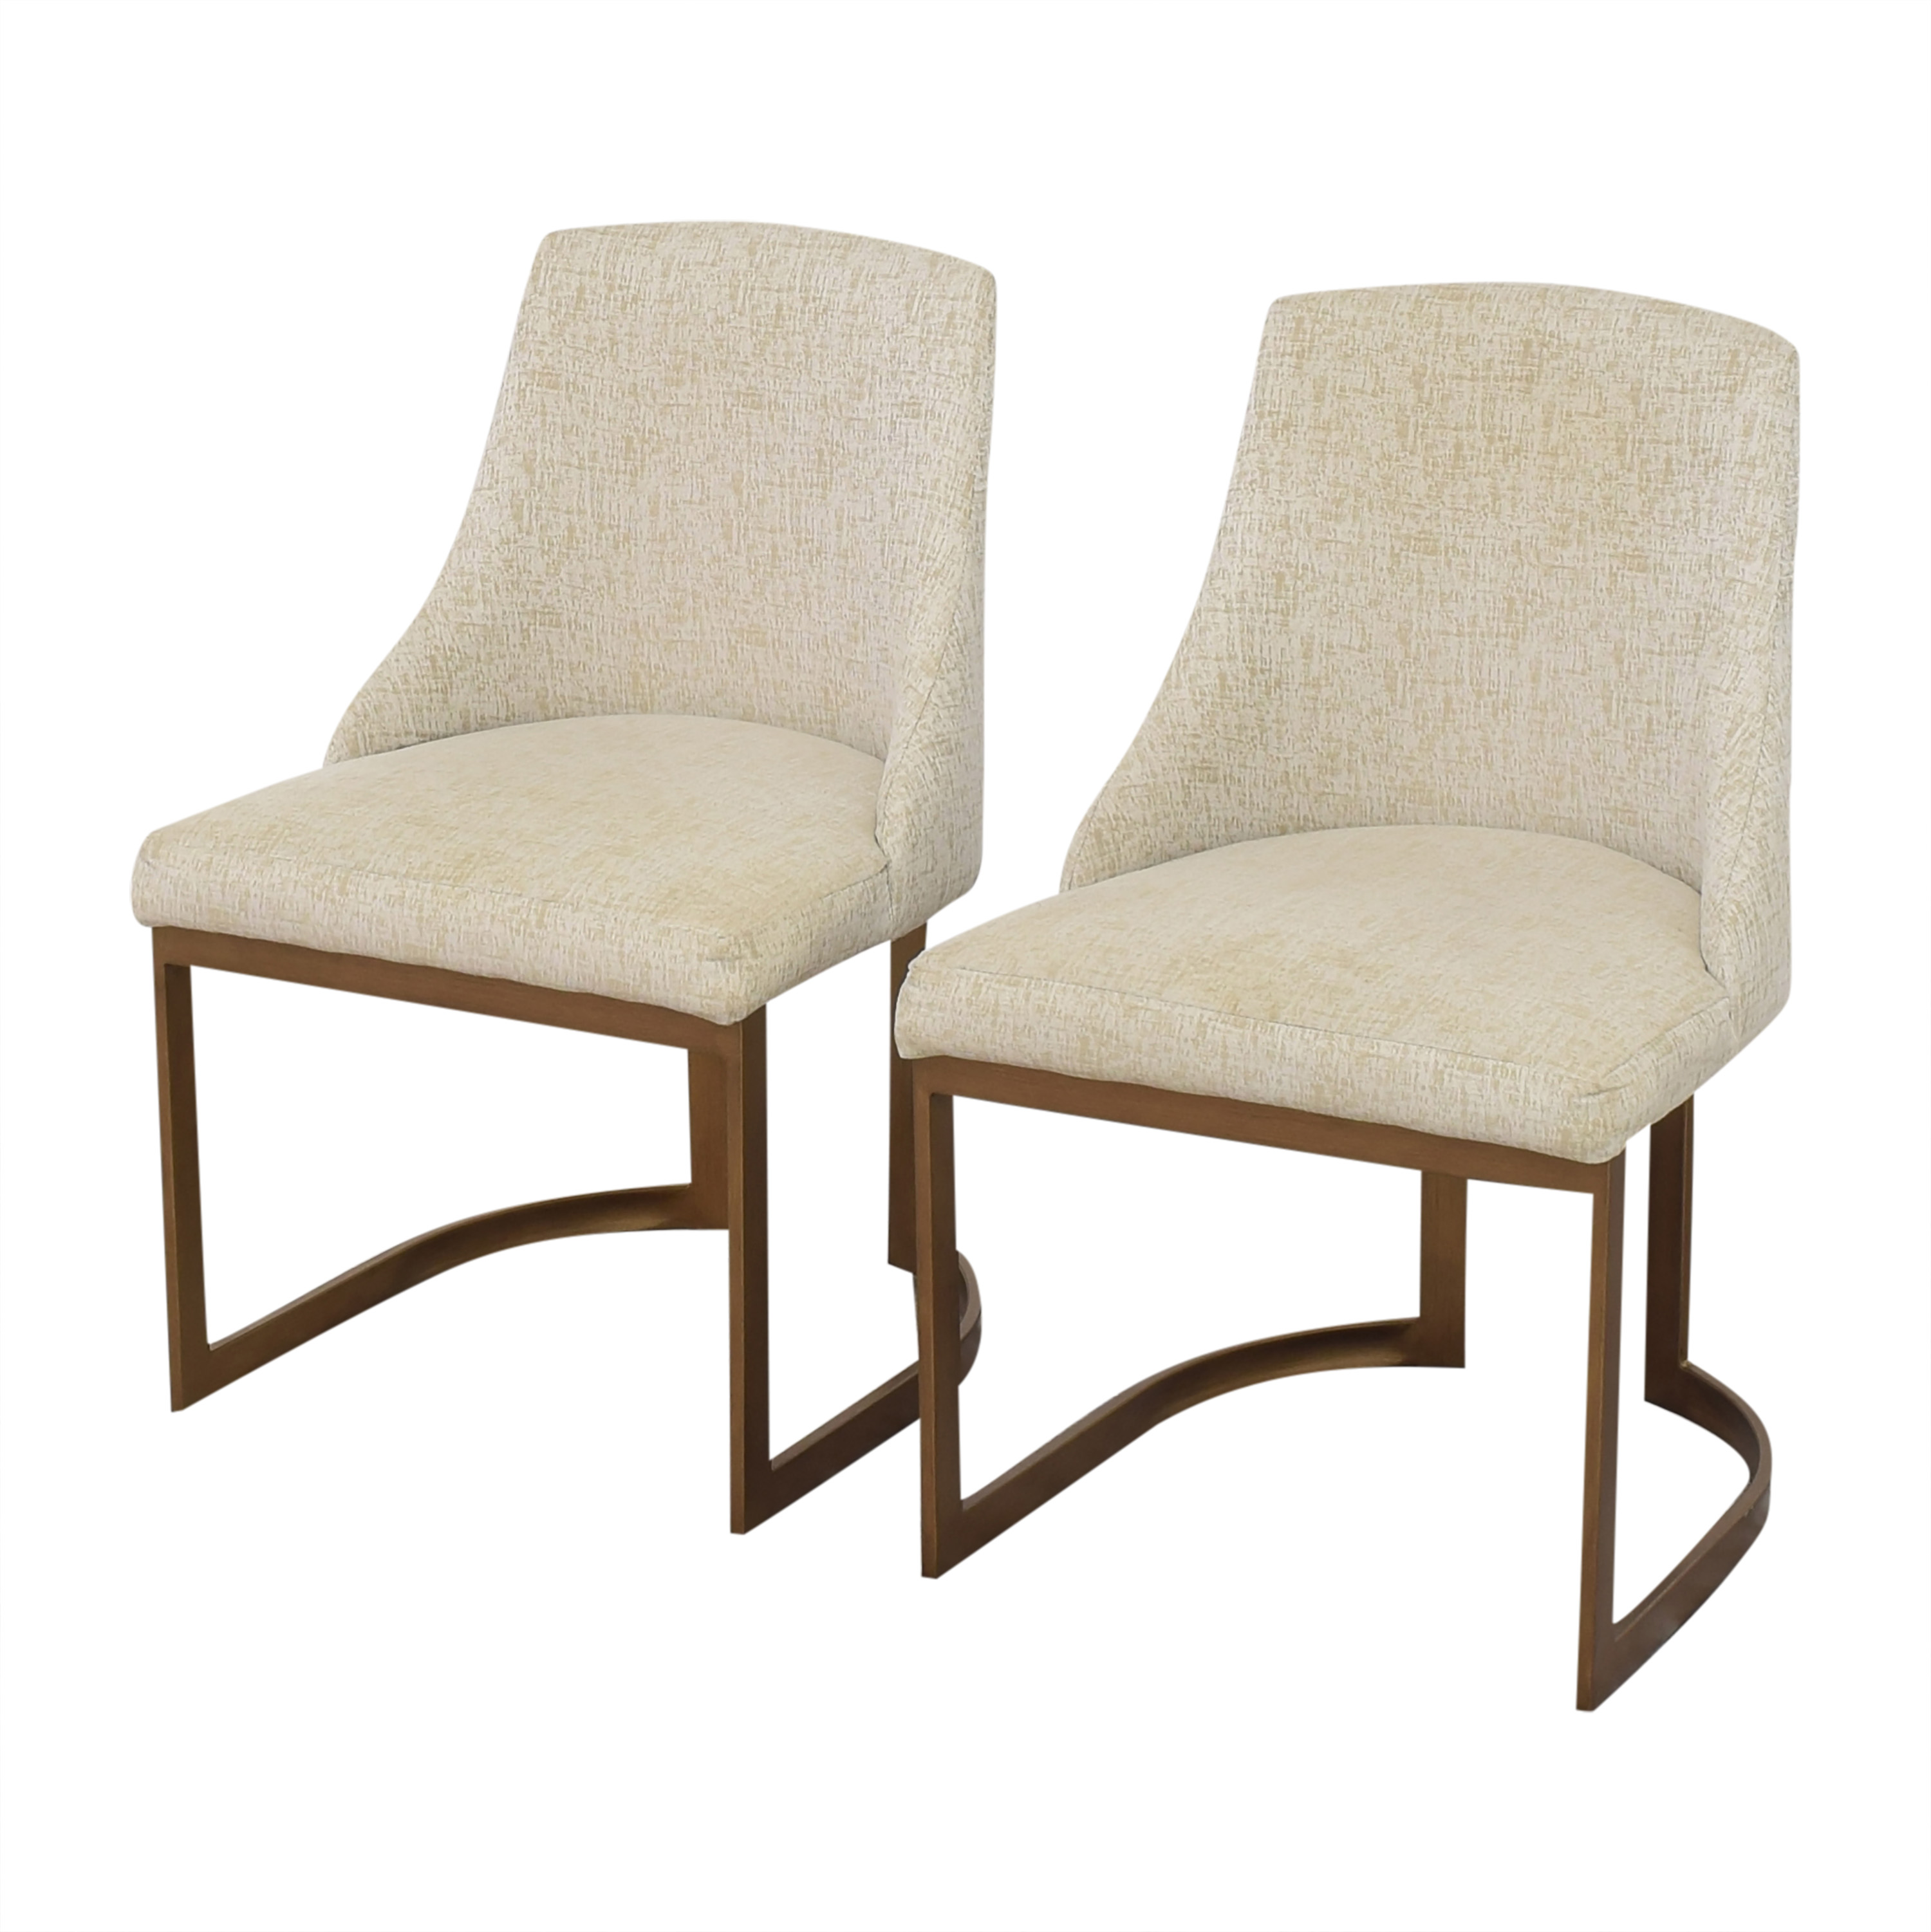 buy Madison Park Bryce Dining Chairs Madison Park Dining Chairs